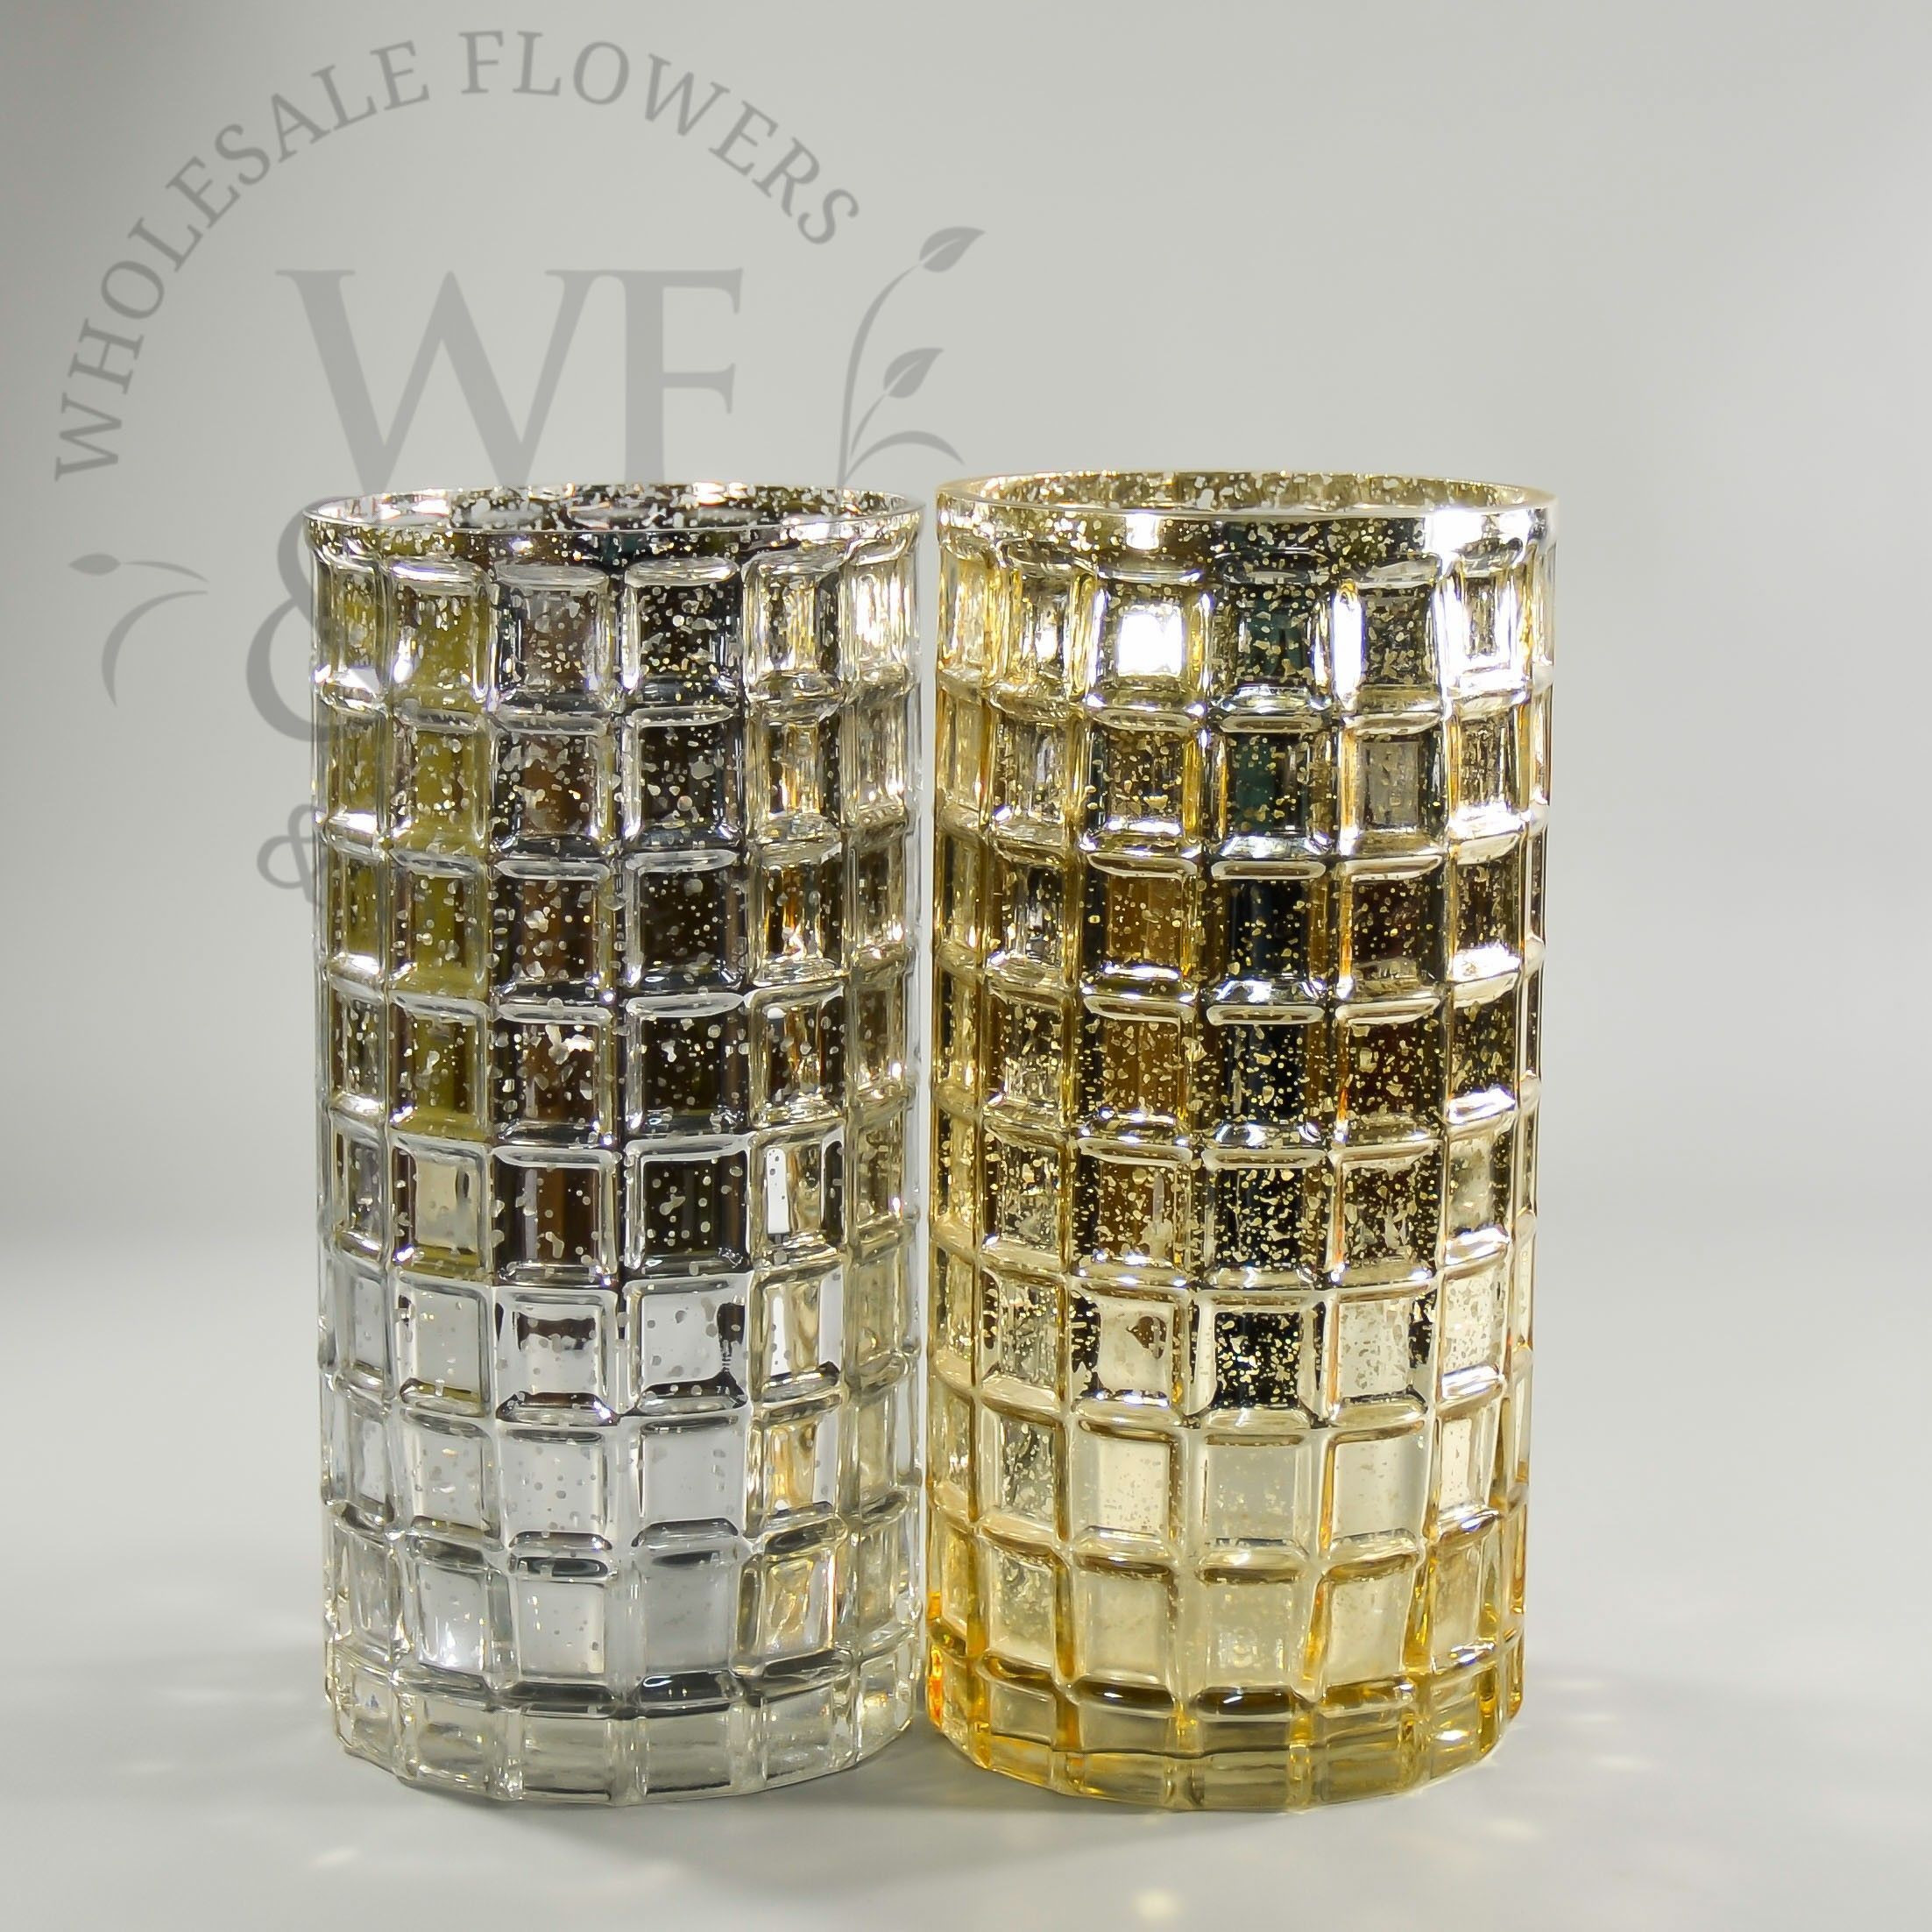 Michaels Glass Cylinder Vase Of Tall Vases wholesale Luxury Silver and Gold Mercury Glass Mosaic with Regard to Tall Vases wholesale Luxury Silver and Gold Mercury Glass Mosaic Cylinder Vase 10x5in